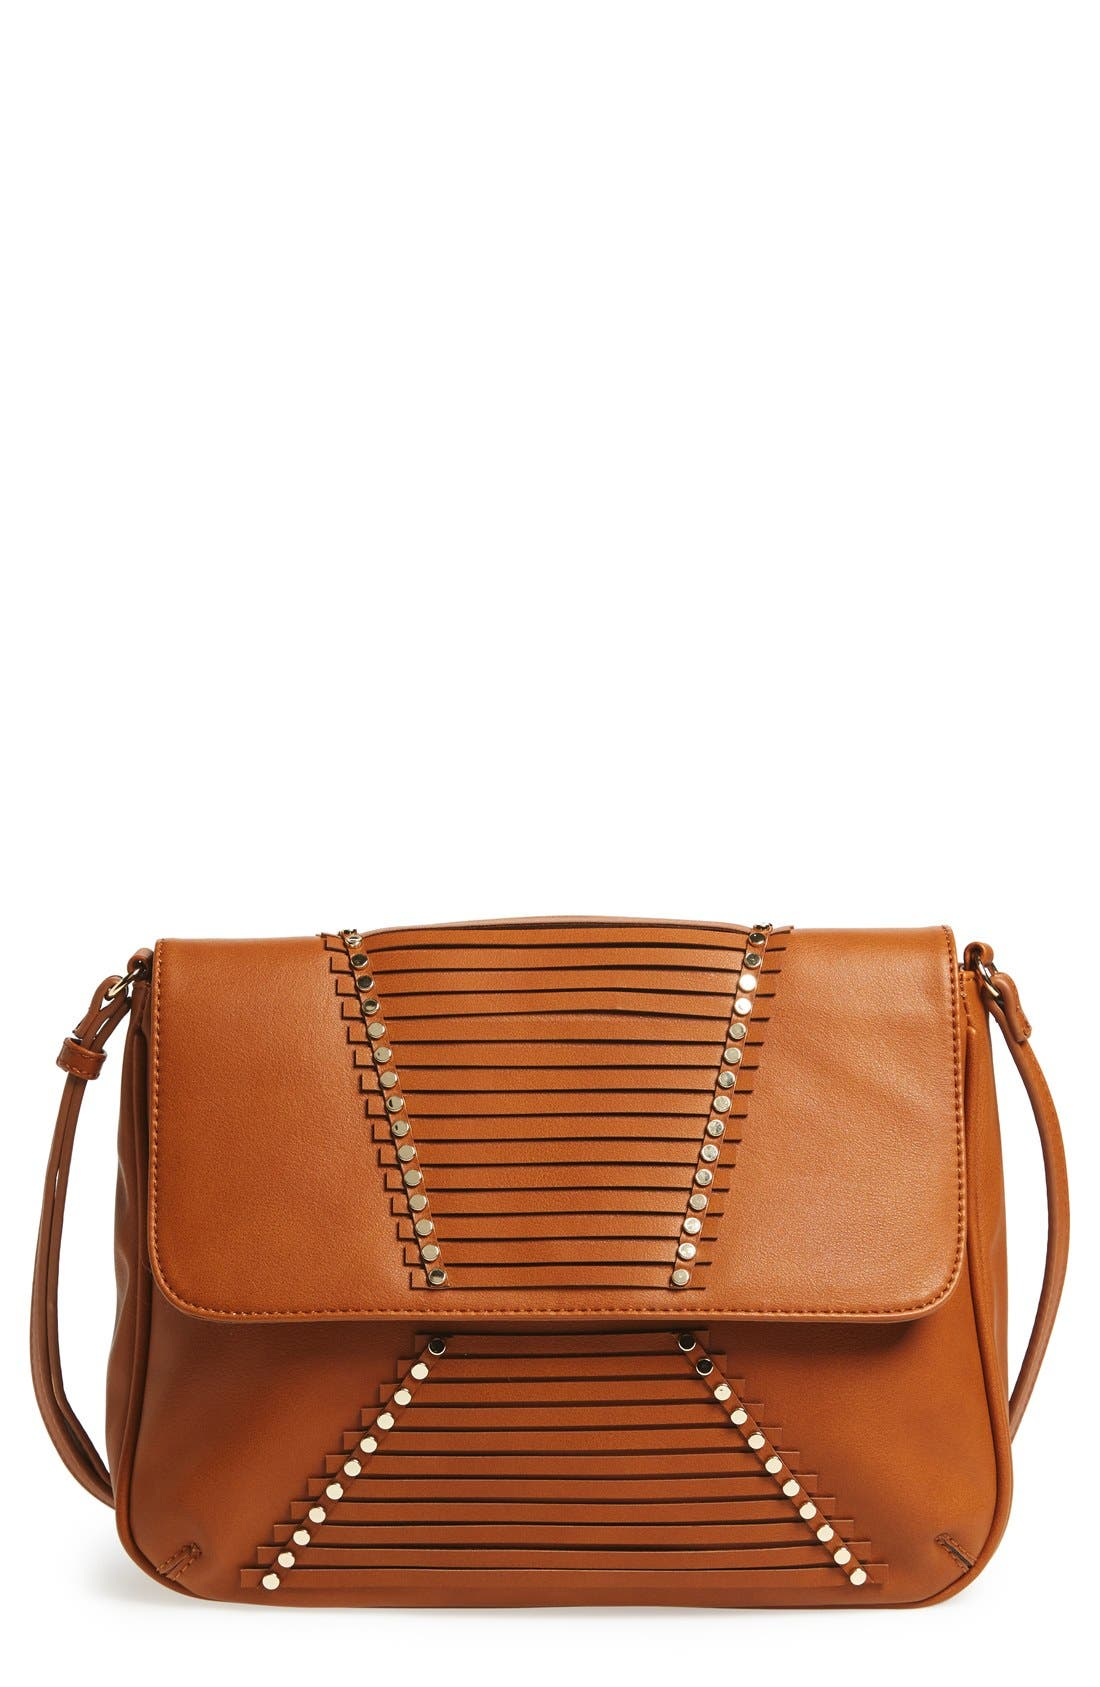 Main Image - Emperia 'Larissa' Studded Flap Faux Leather Crossbody Bag